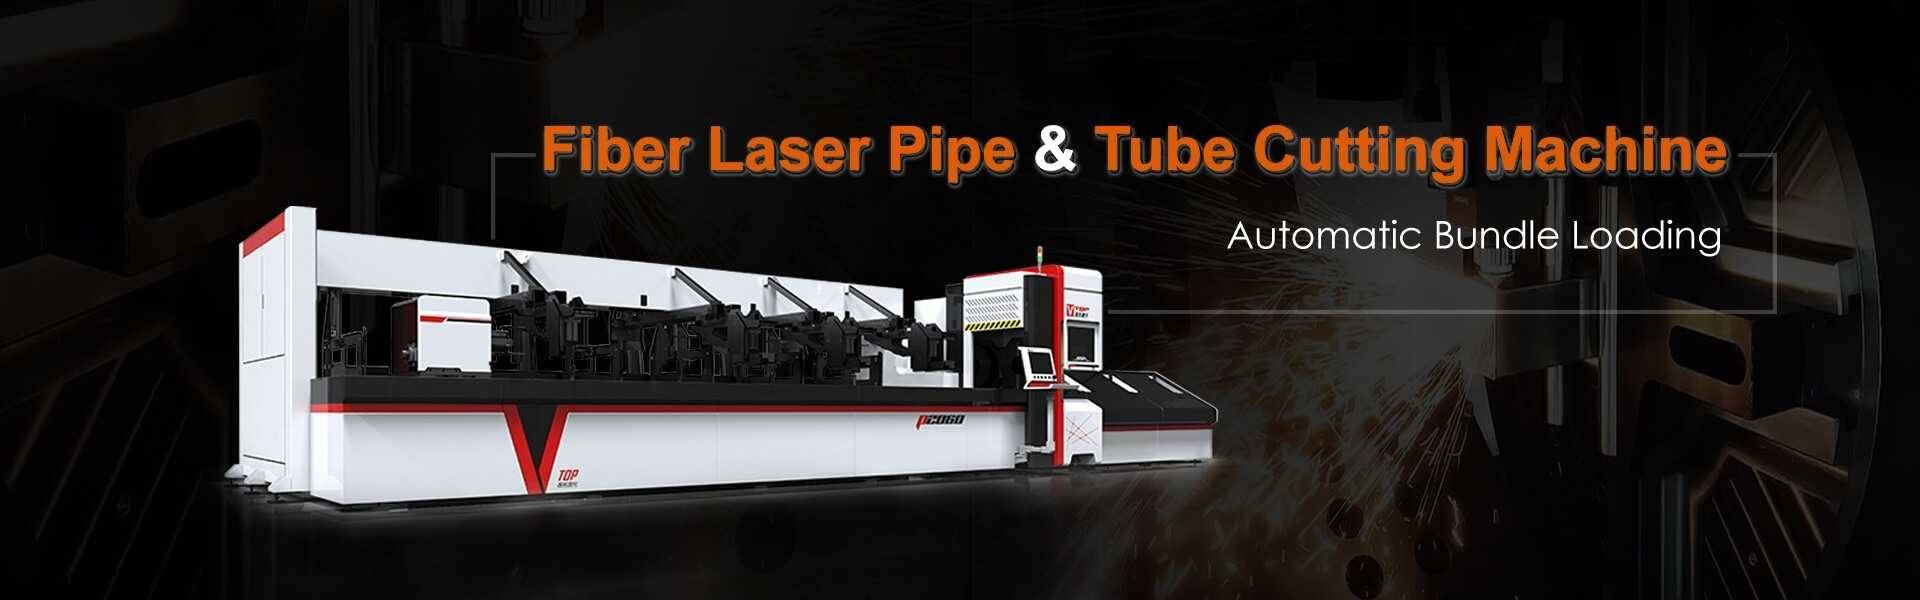 pipe and tube fiber laser cutting machine-banner